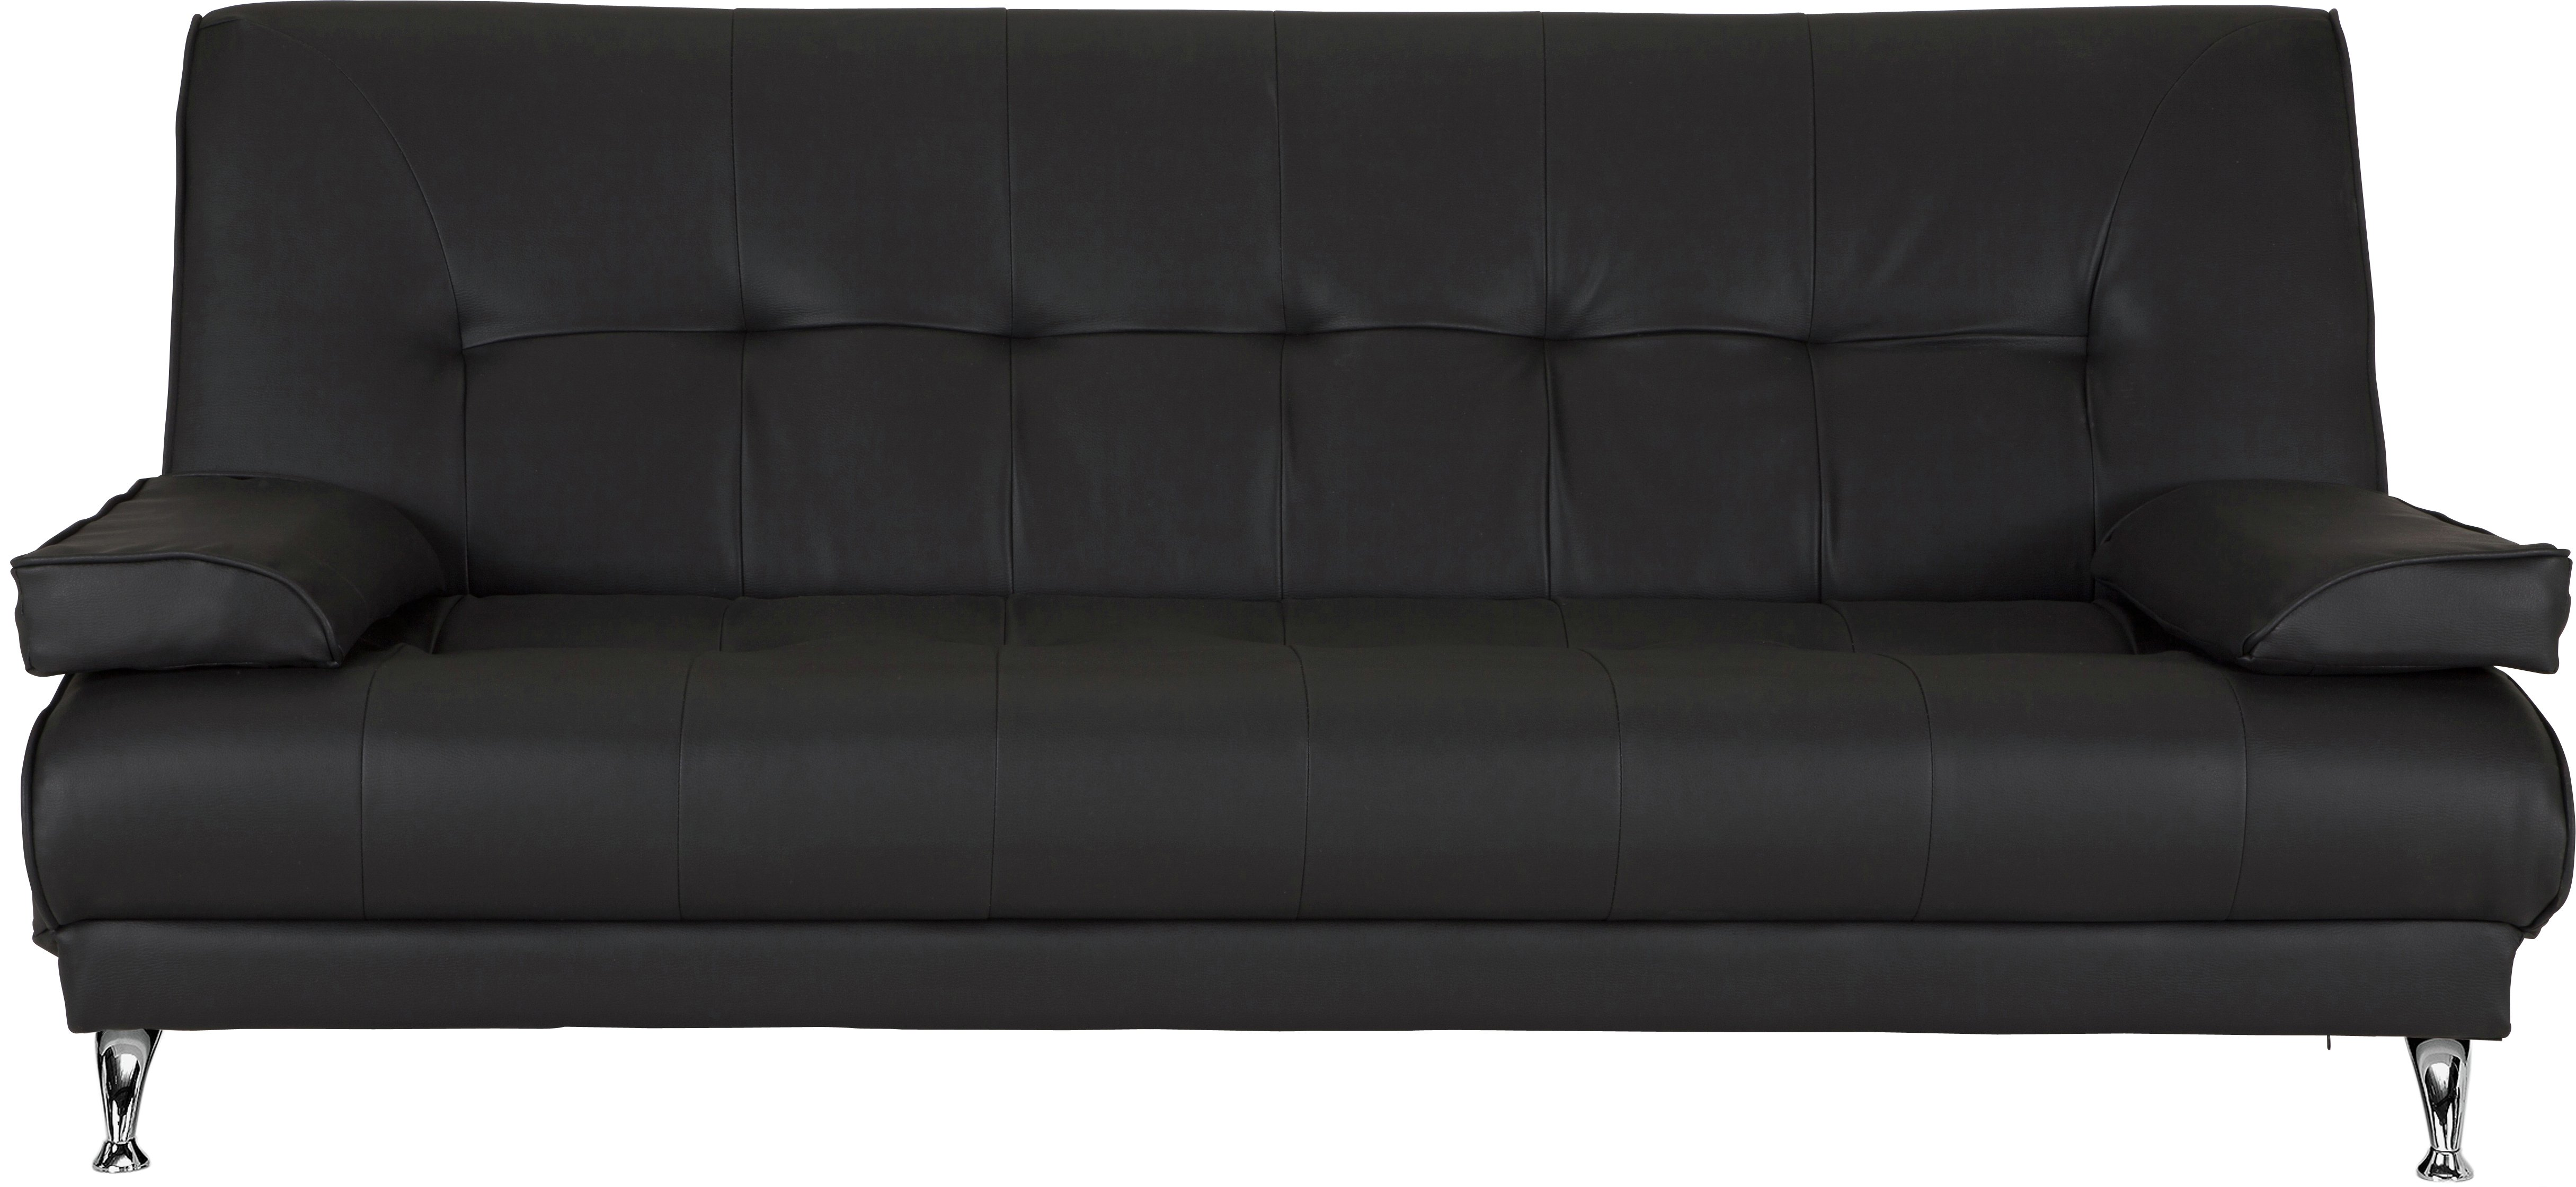 HOME Sicily 2 Seater Clic Clac Sofa Bed   Black